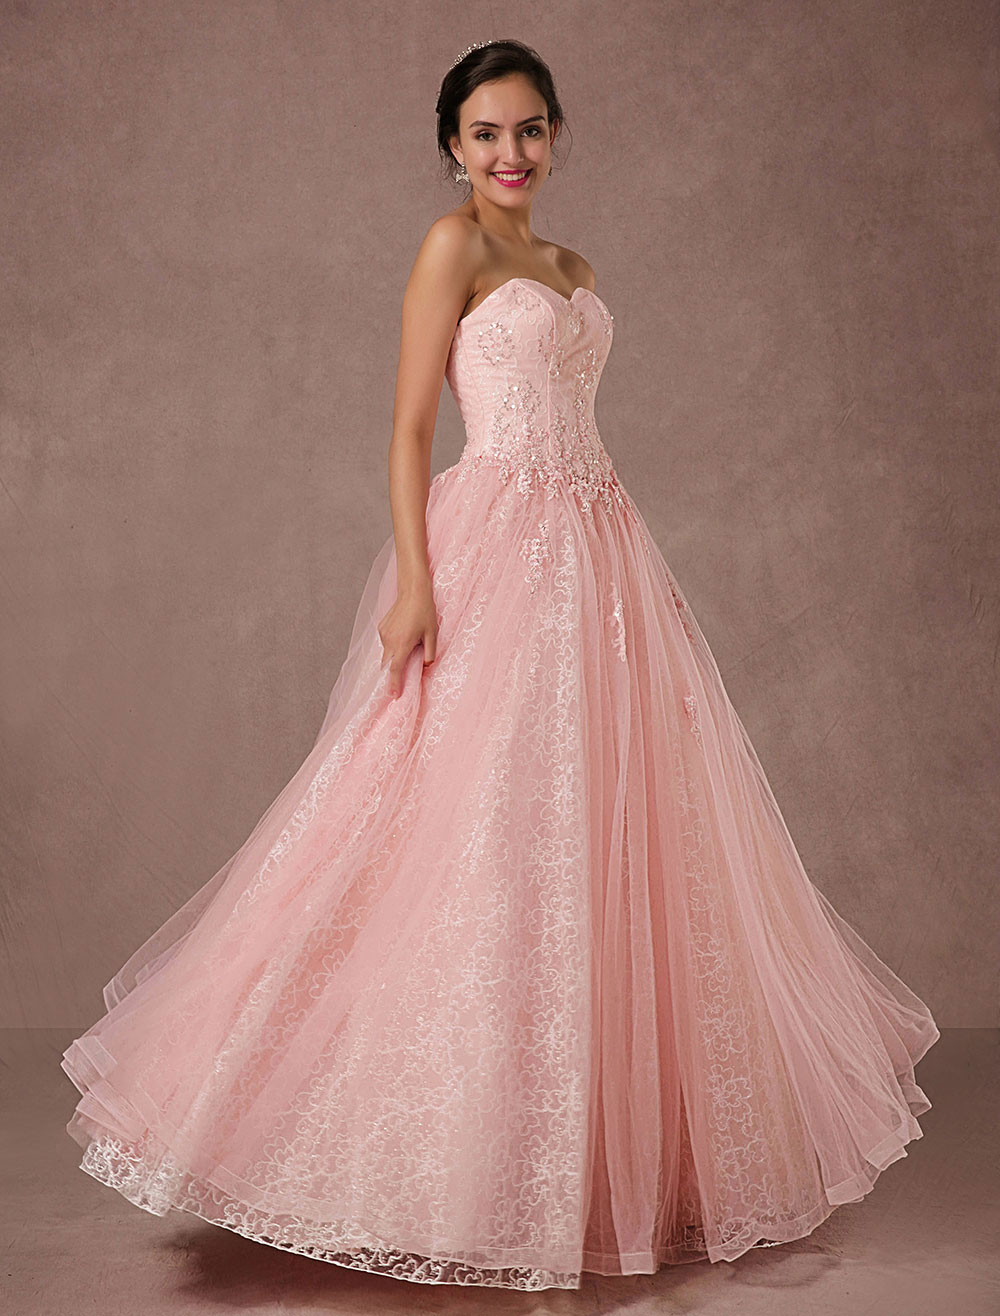 Buy Pink Lace Wedding Dress Tulle Strapless Bridal Gown Floor-length A-line Beading Prom Dress Backless Luxury Pageant Dress for $281.69 in Milanoo store